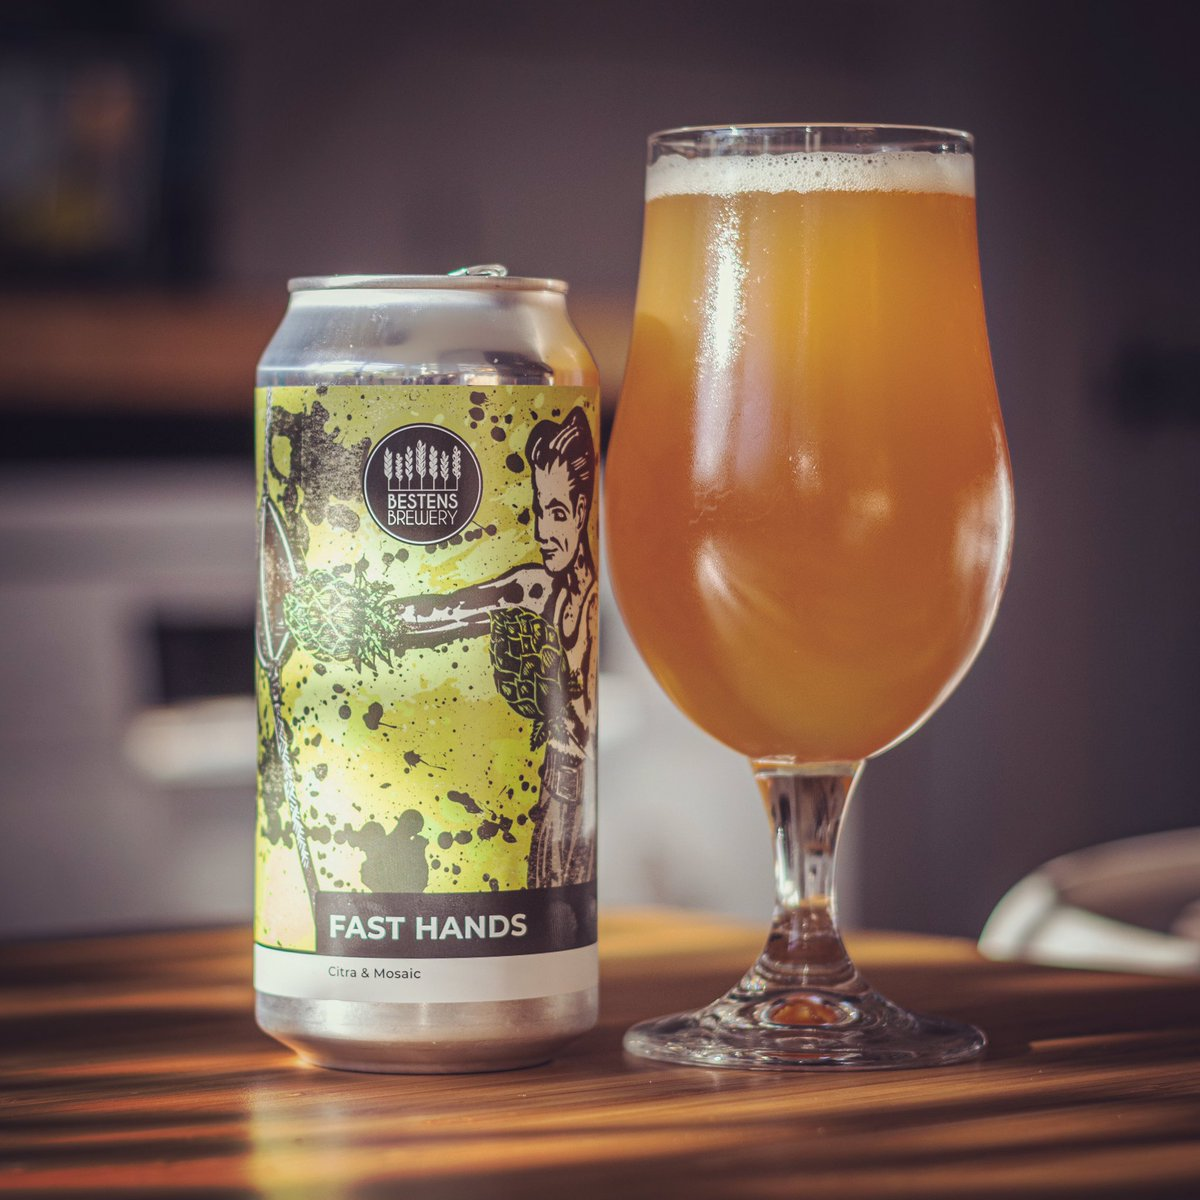 Available on our webshop this week: BN1 Fast Hands Drei Brüder  Pale Ale Amarillo & Mosaic Free local delivery for orders over £20 and nationwide courier available!  #beerdelivery #beeroclock #craftbeeruk #sussex #independentbrewery #smallbusiness https://t.co/wbhKdgNYIP